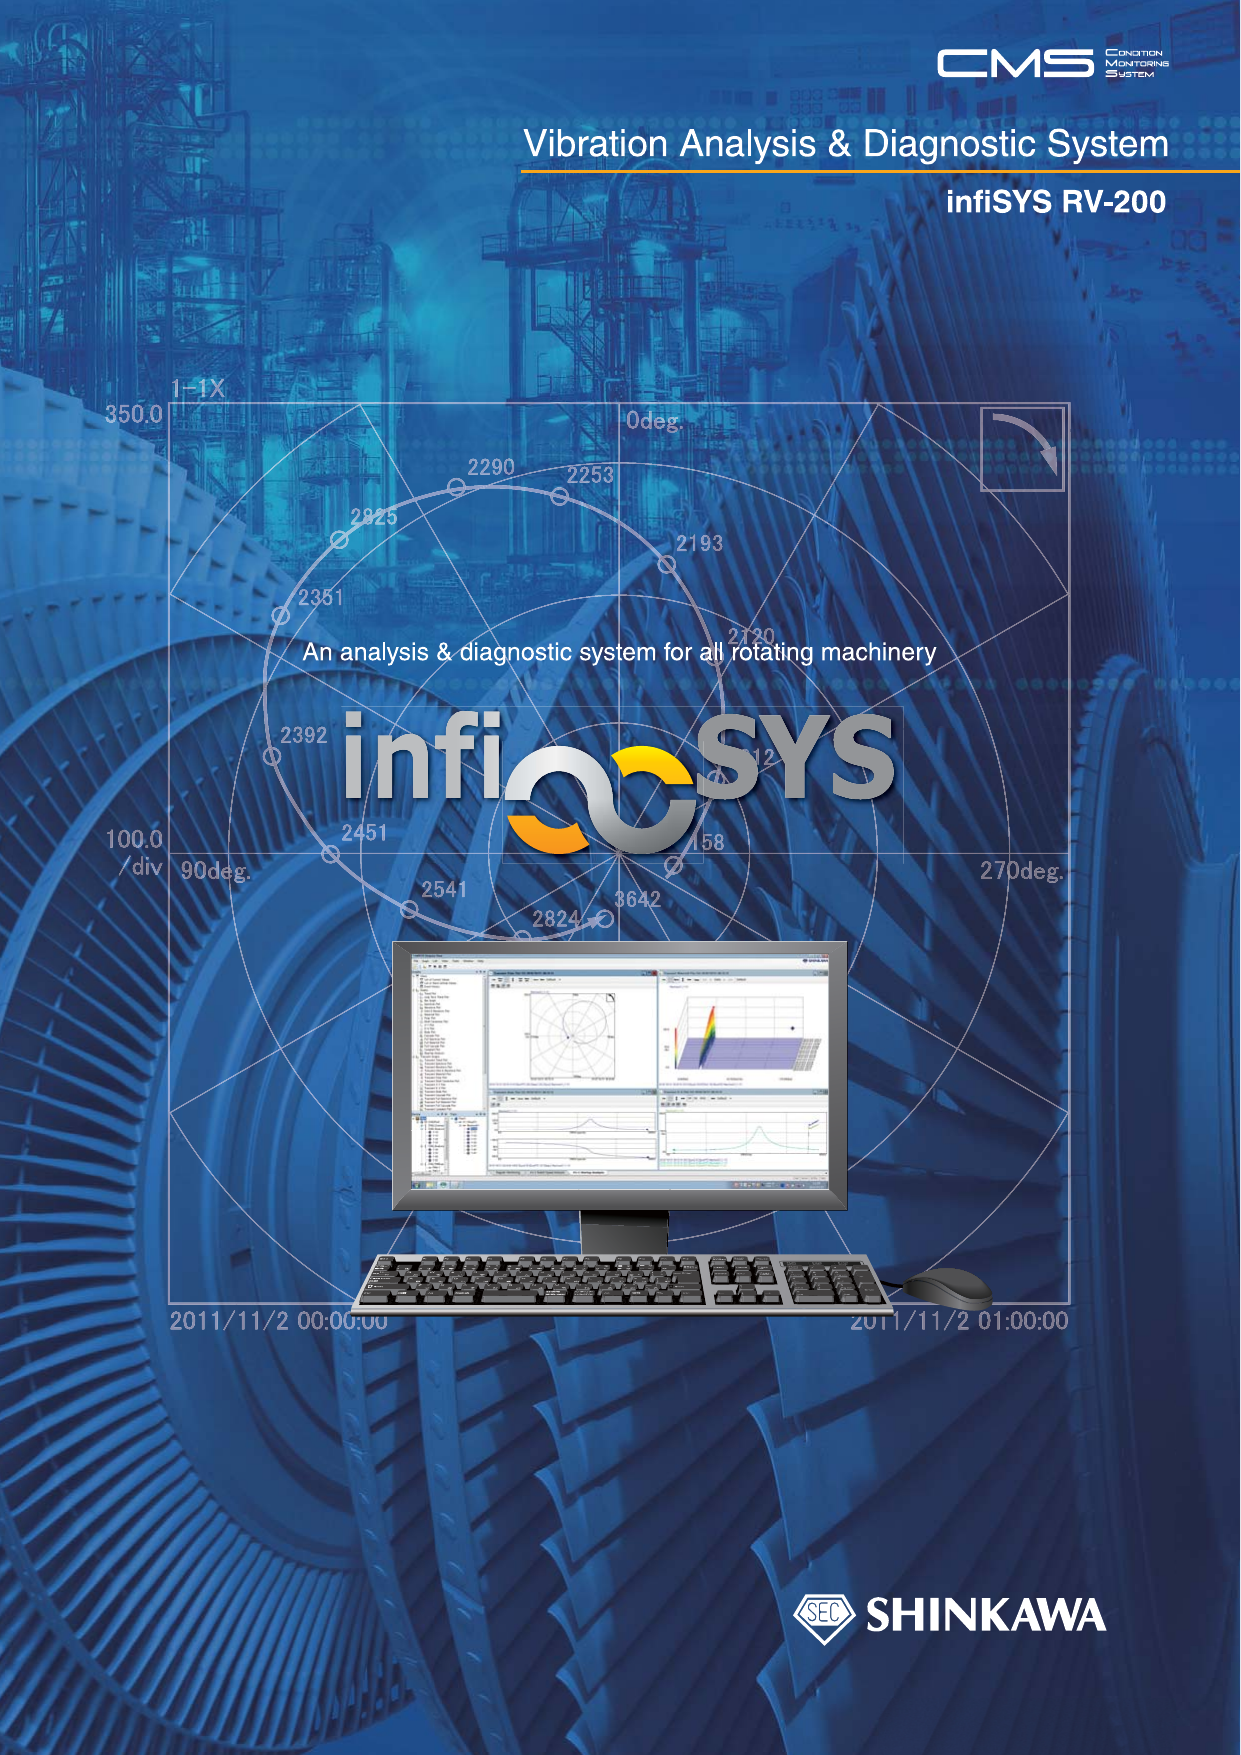 Vibration Analysis & Diagnostic System infiSYS RV-200